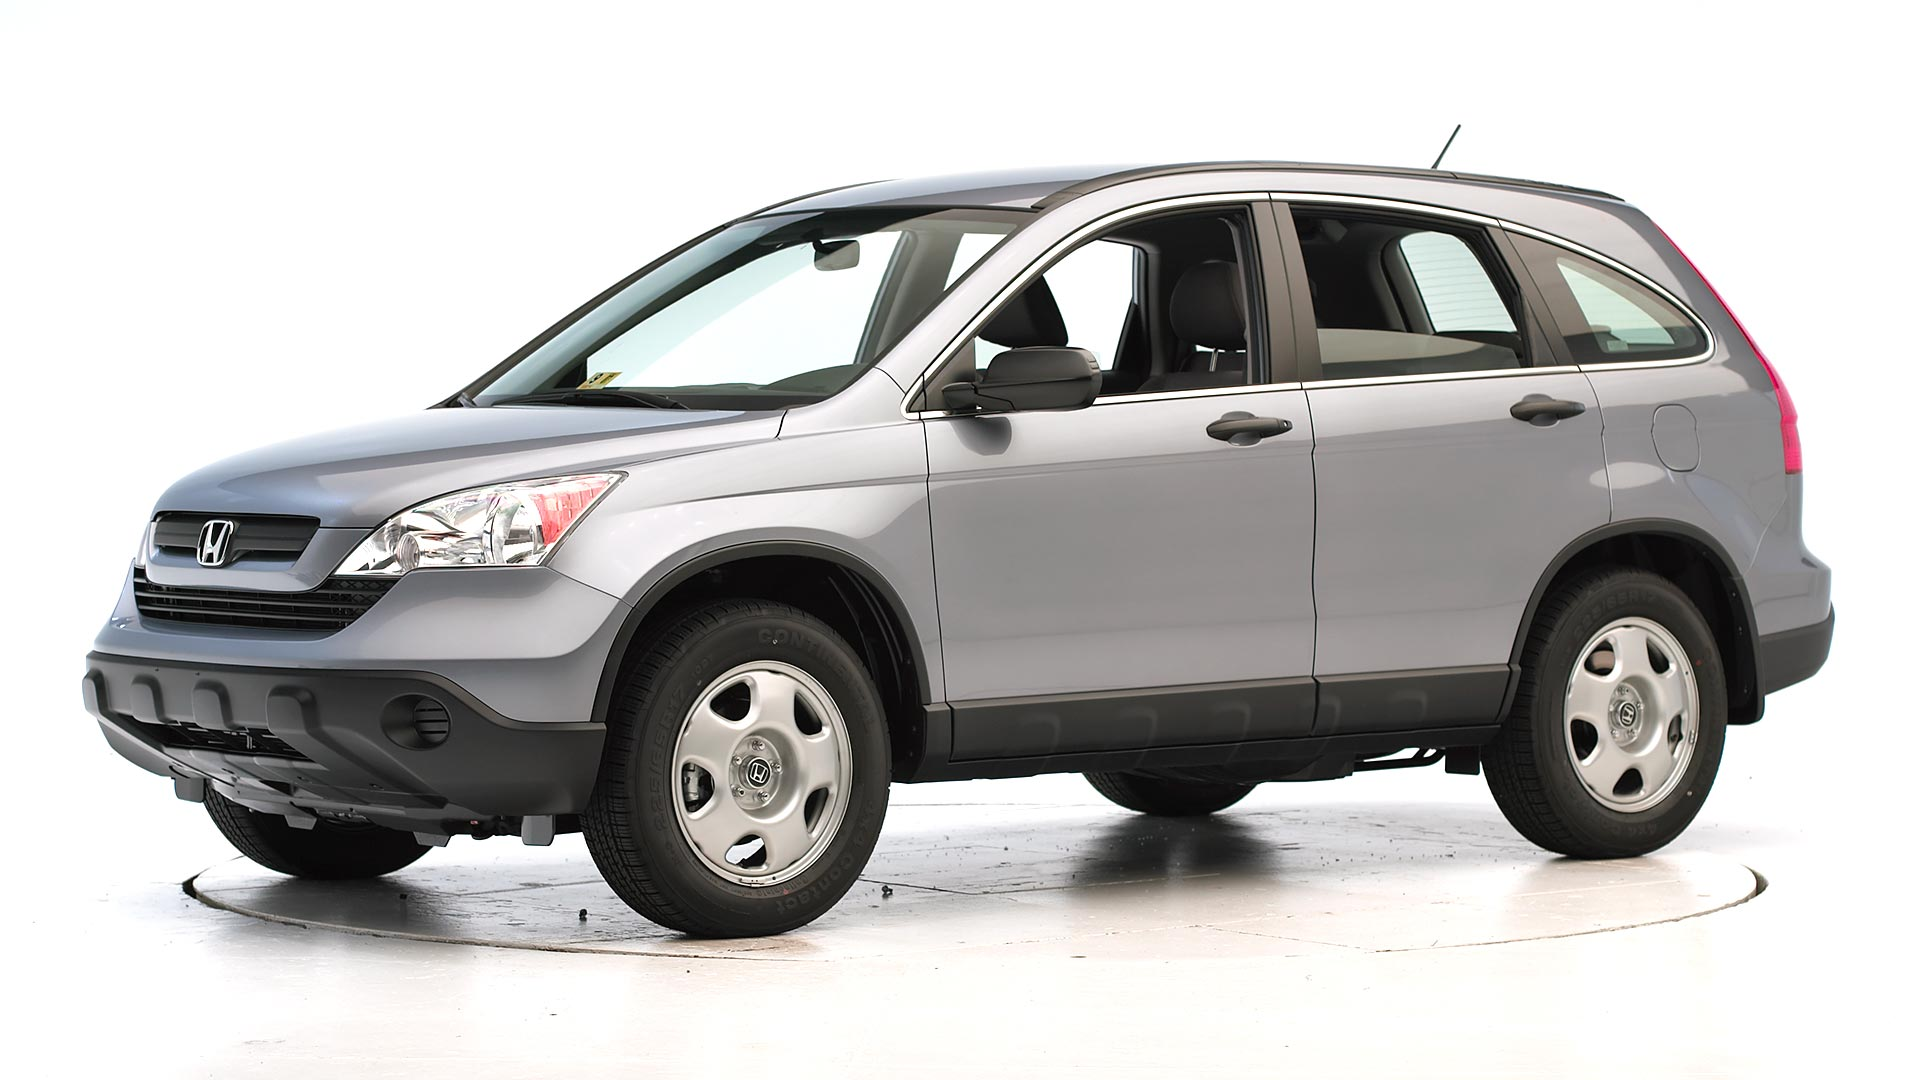 2008 Honda CR-V 4-door SUV